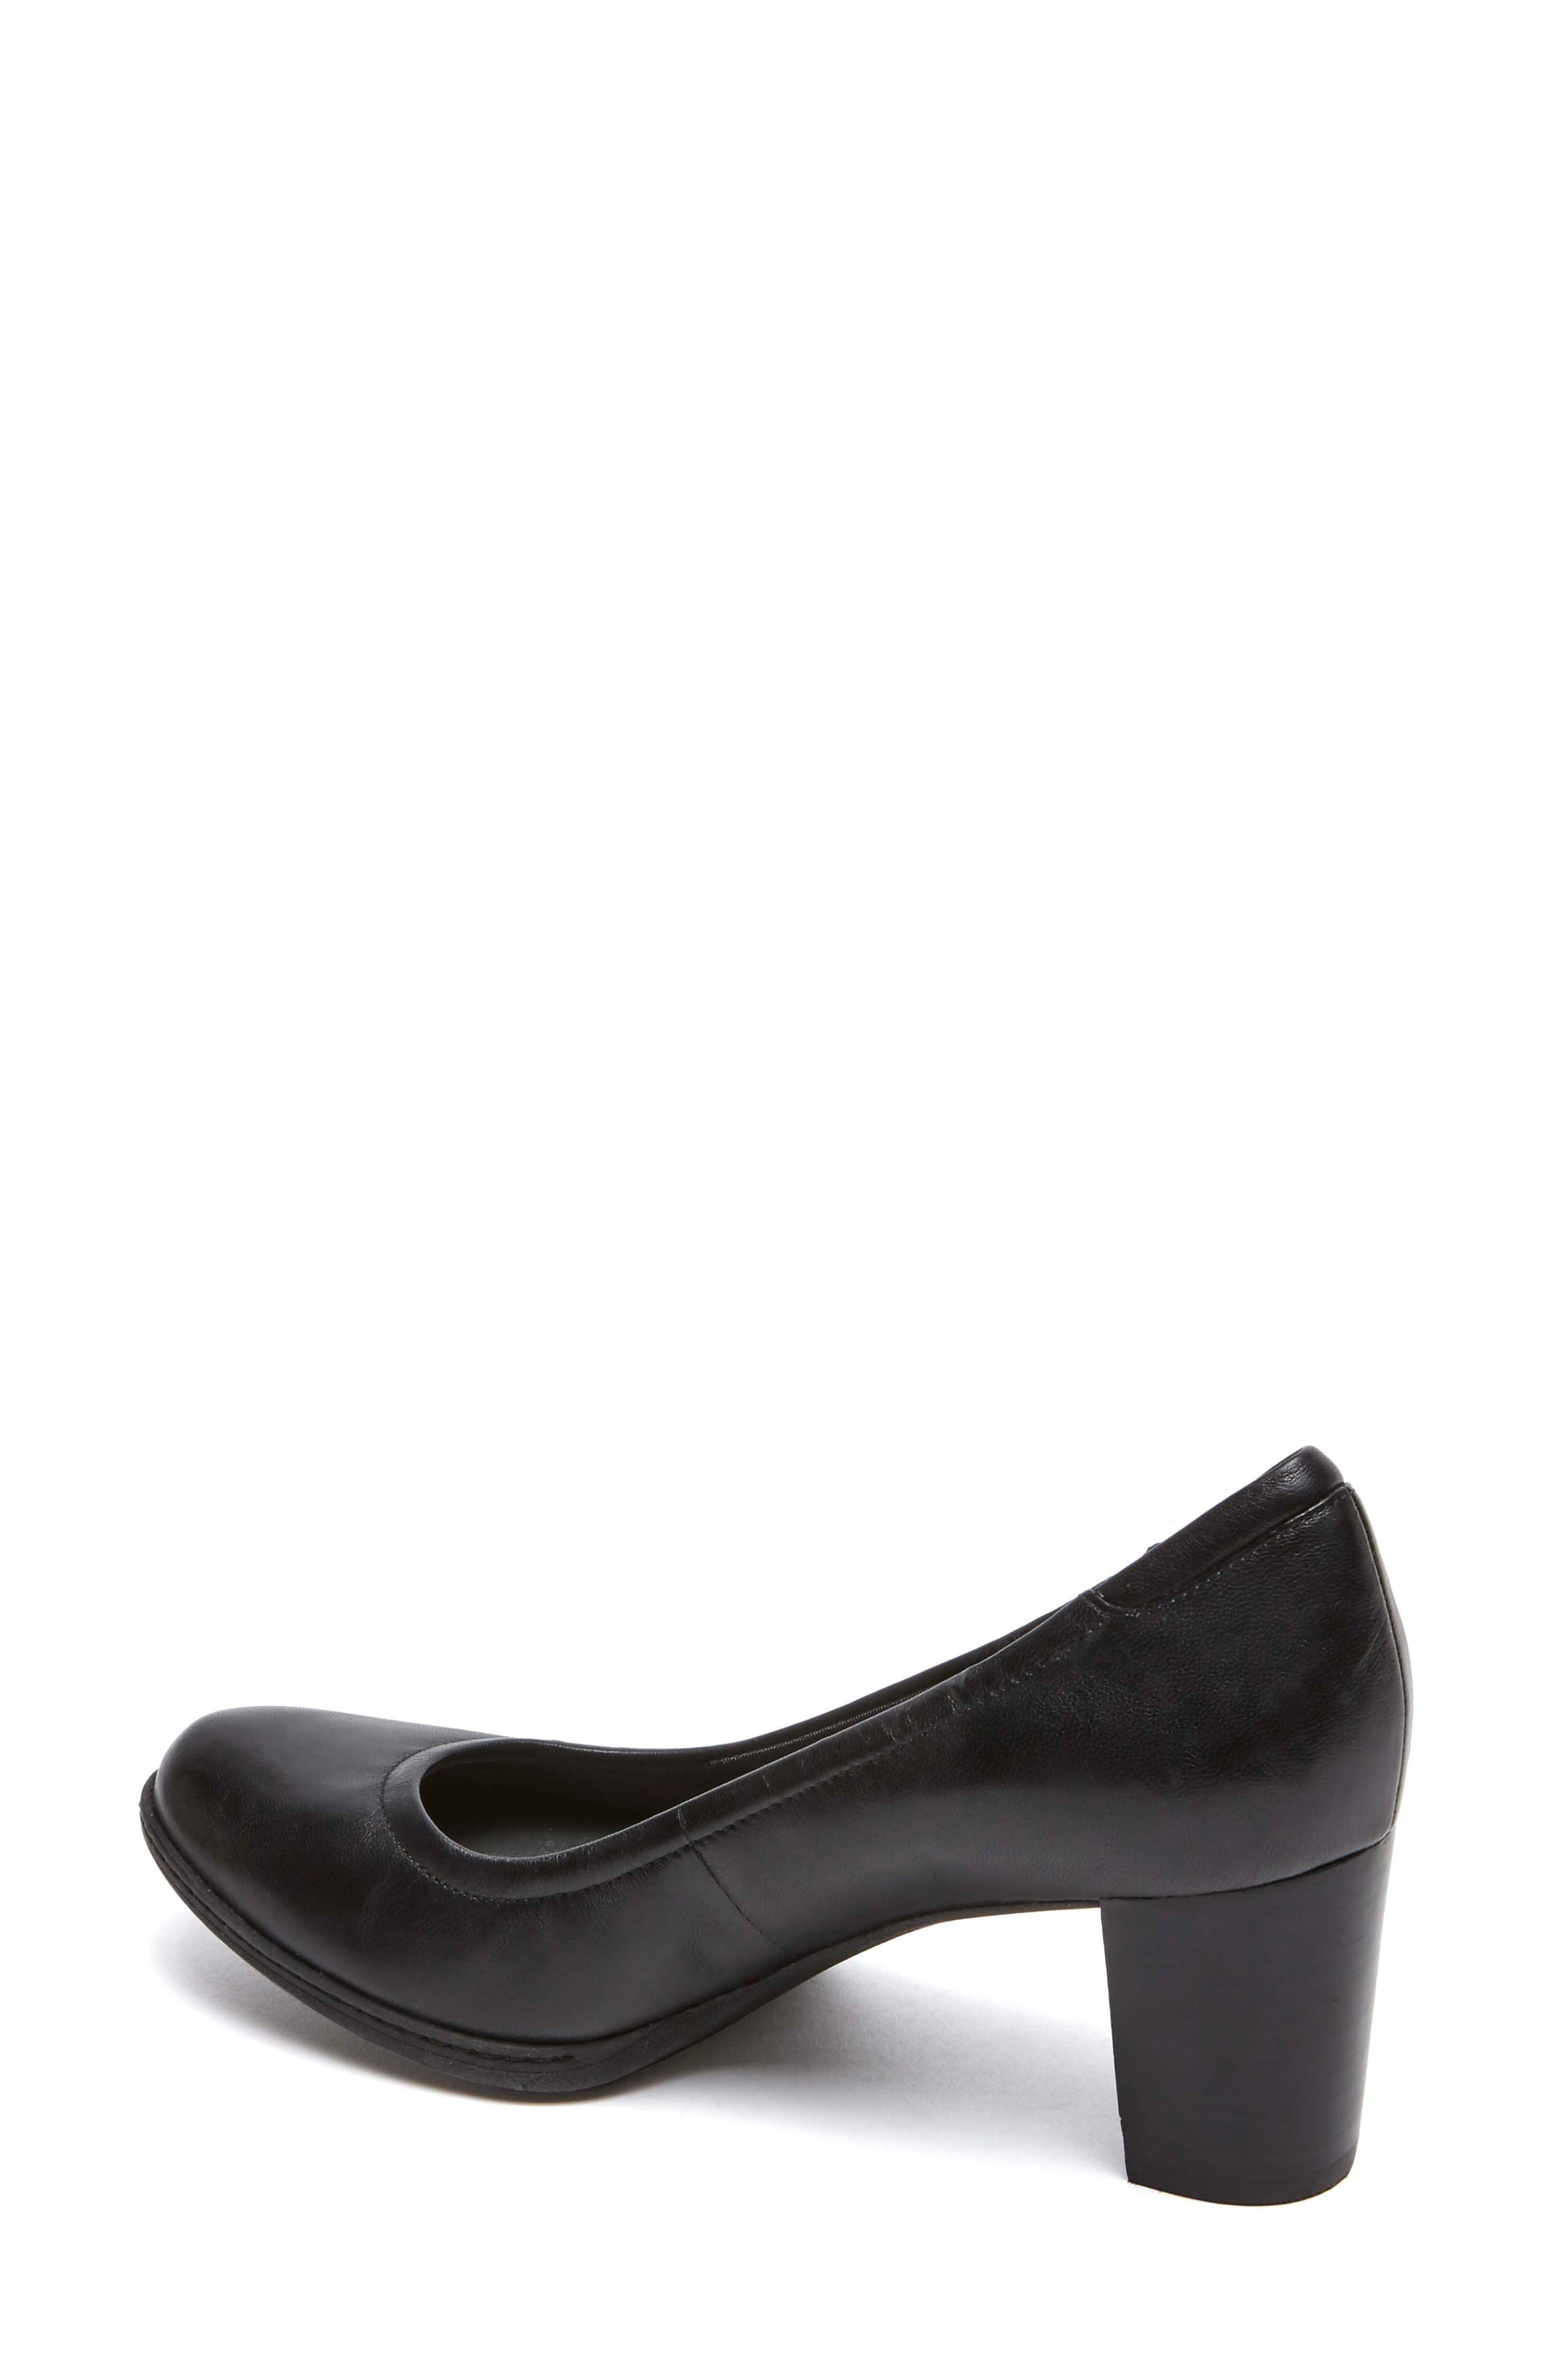 Chaya Round Toe Pump,                             Alternate thumbnail 2, color,                             BLACK LEATHER